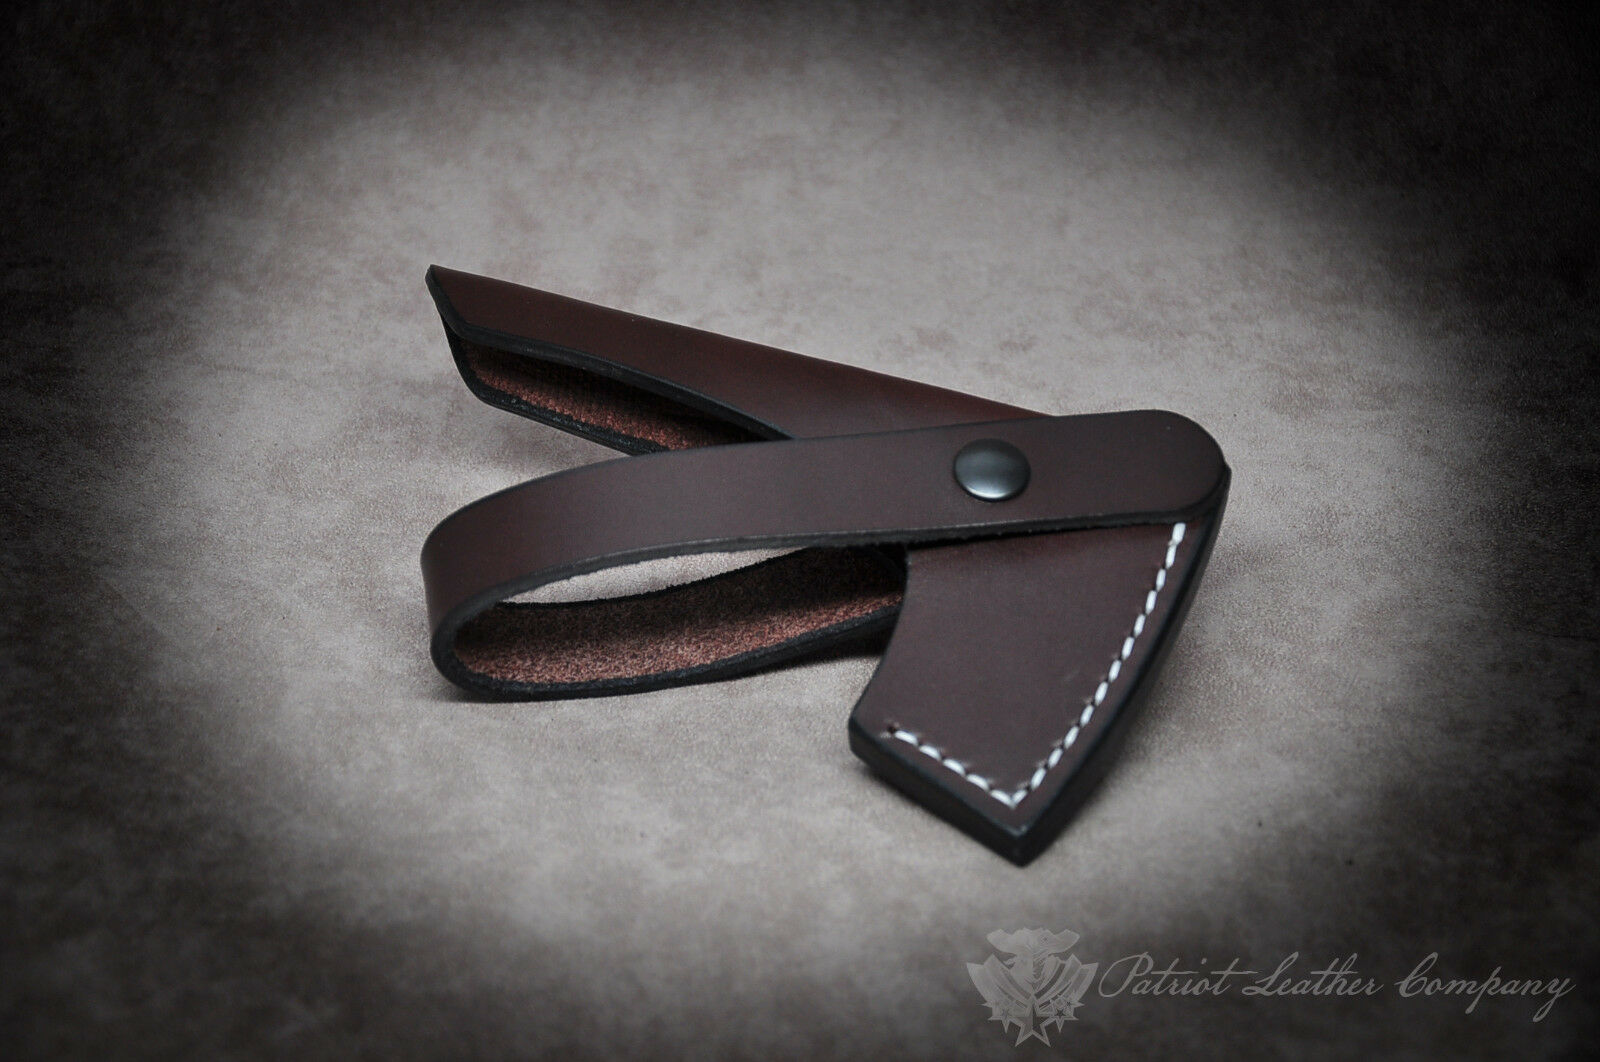 Wetterlings 'The Concord' Axe Sheath